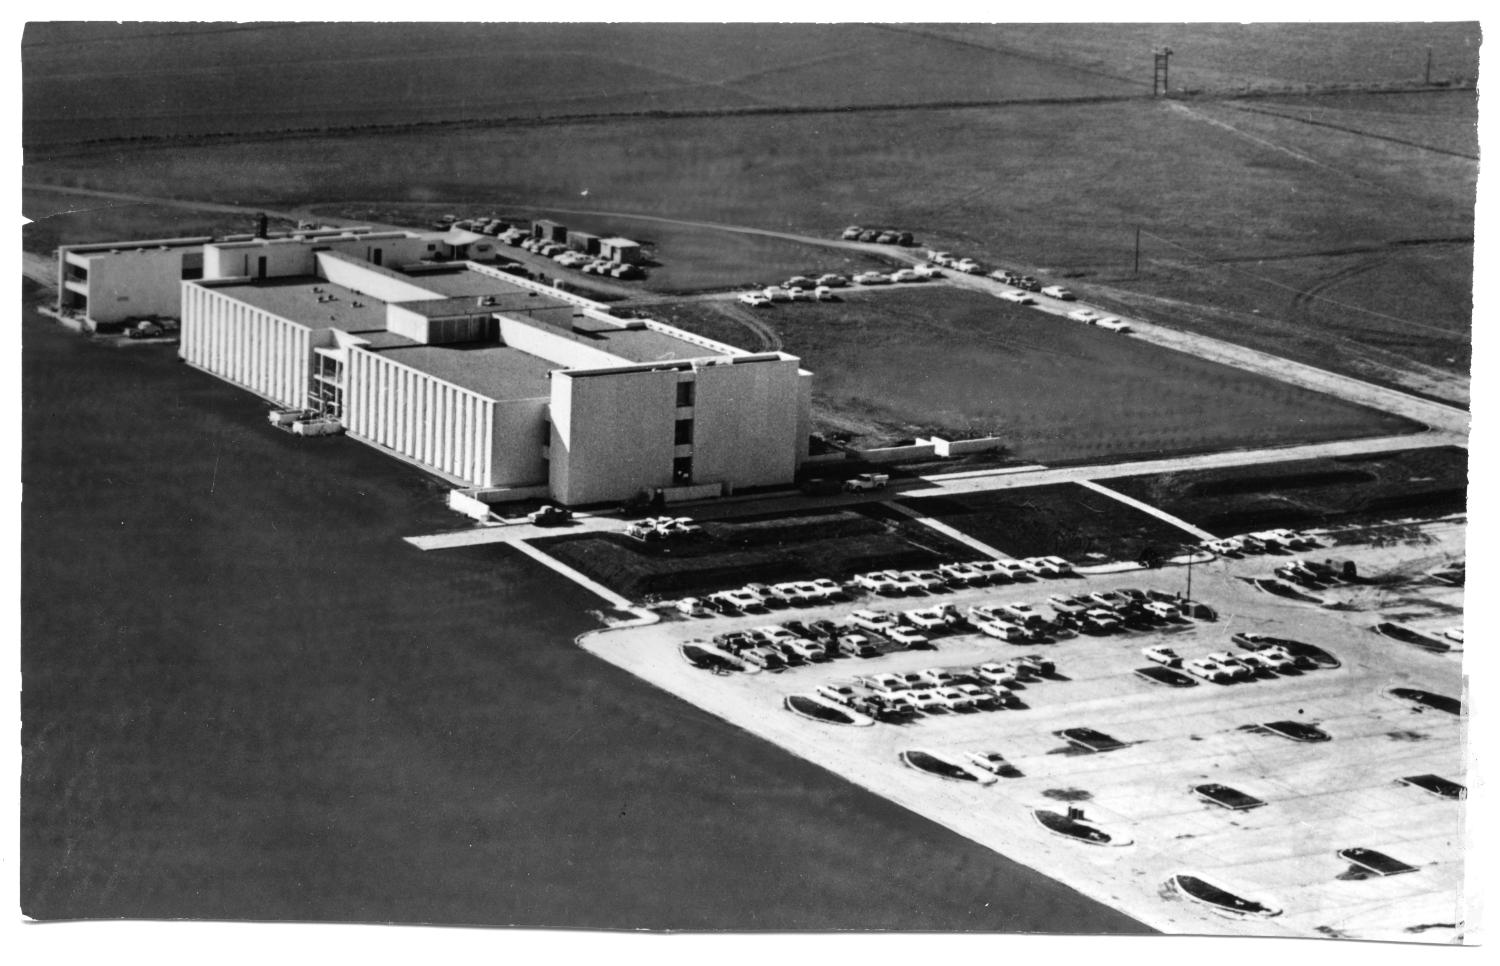 Southwest Center for Advanced Studies (University of Texas - Dallas in Richardson), Photograph of an aerial view of the Southwest Center for Advanced Studies, now known as University of Texas - Dallas. A parking lot with cars is located to the right of the building. In the background, there are cards parked on the sides of roads.,